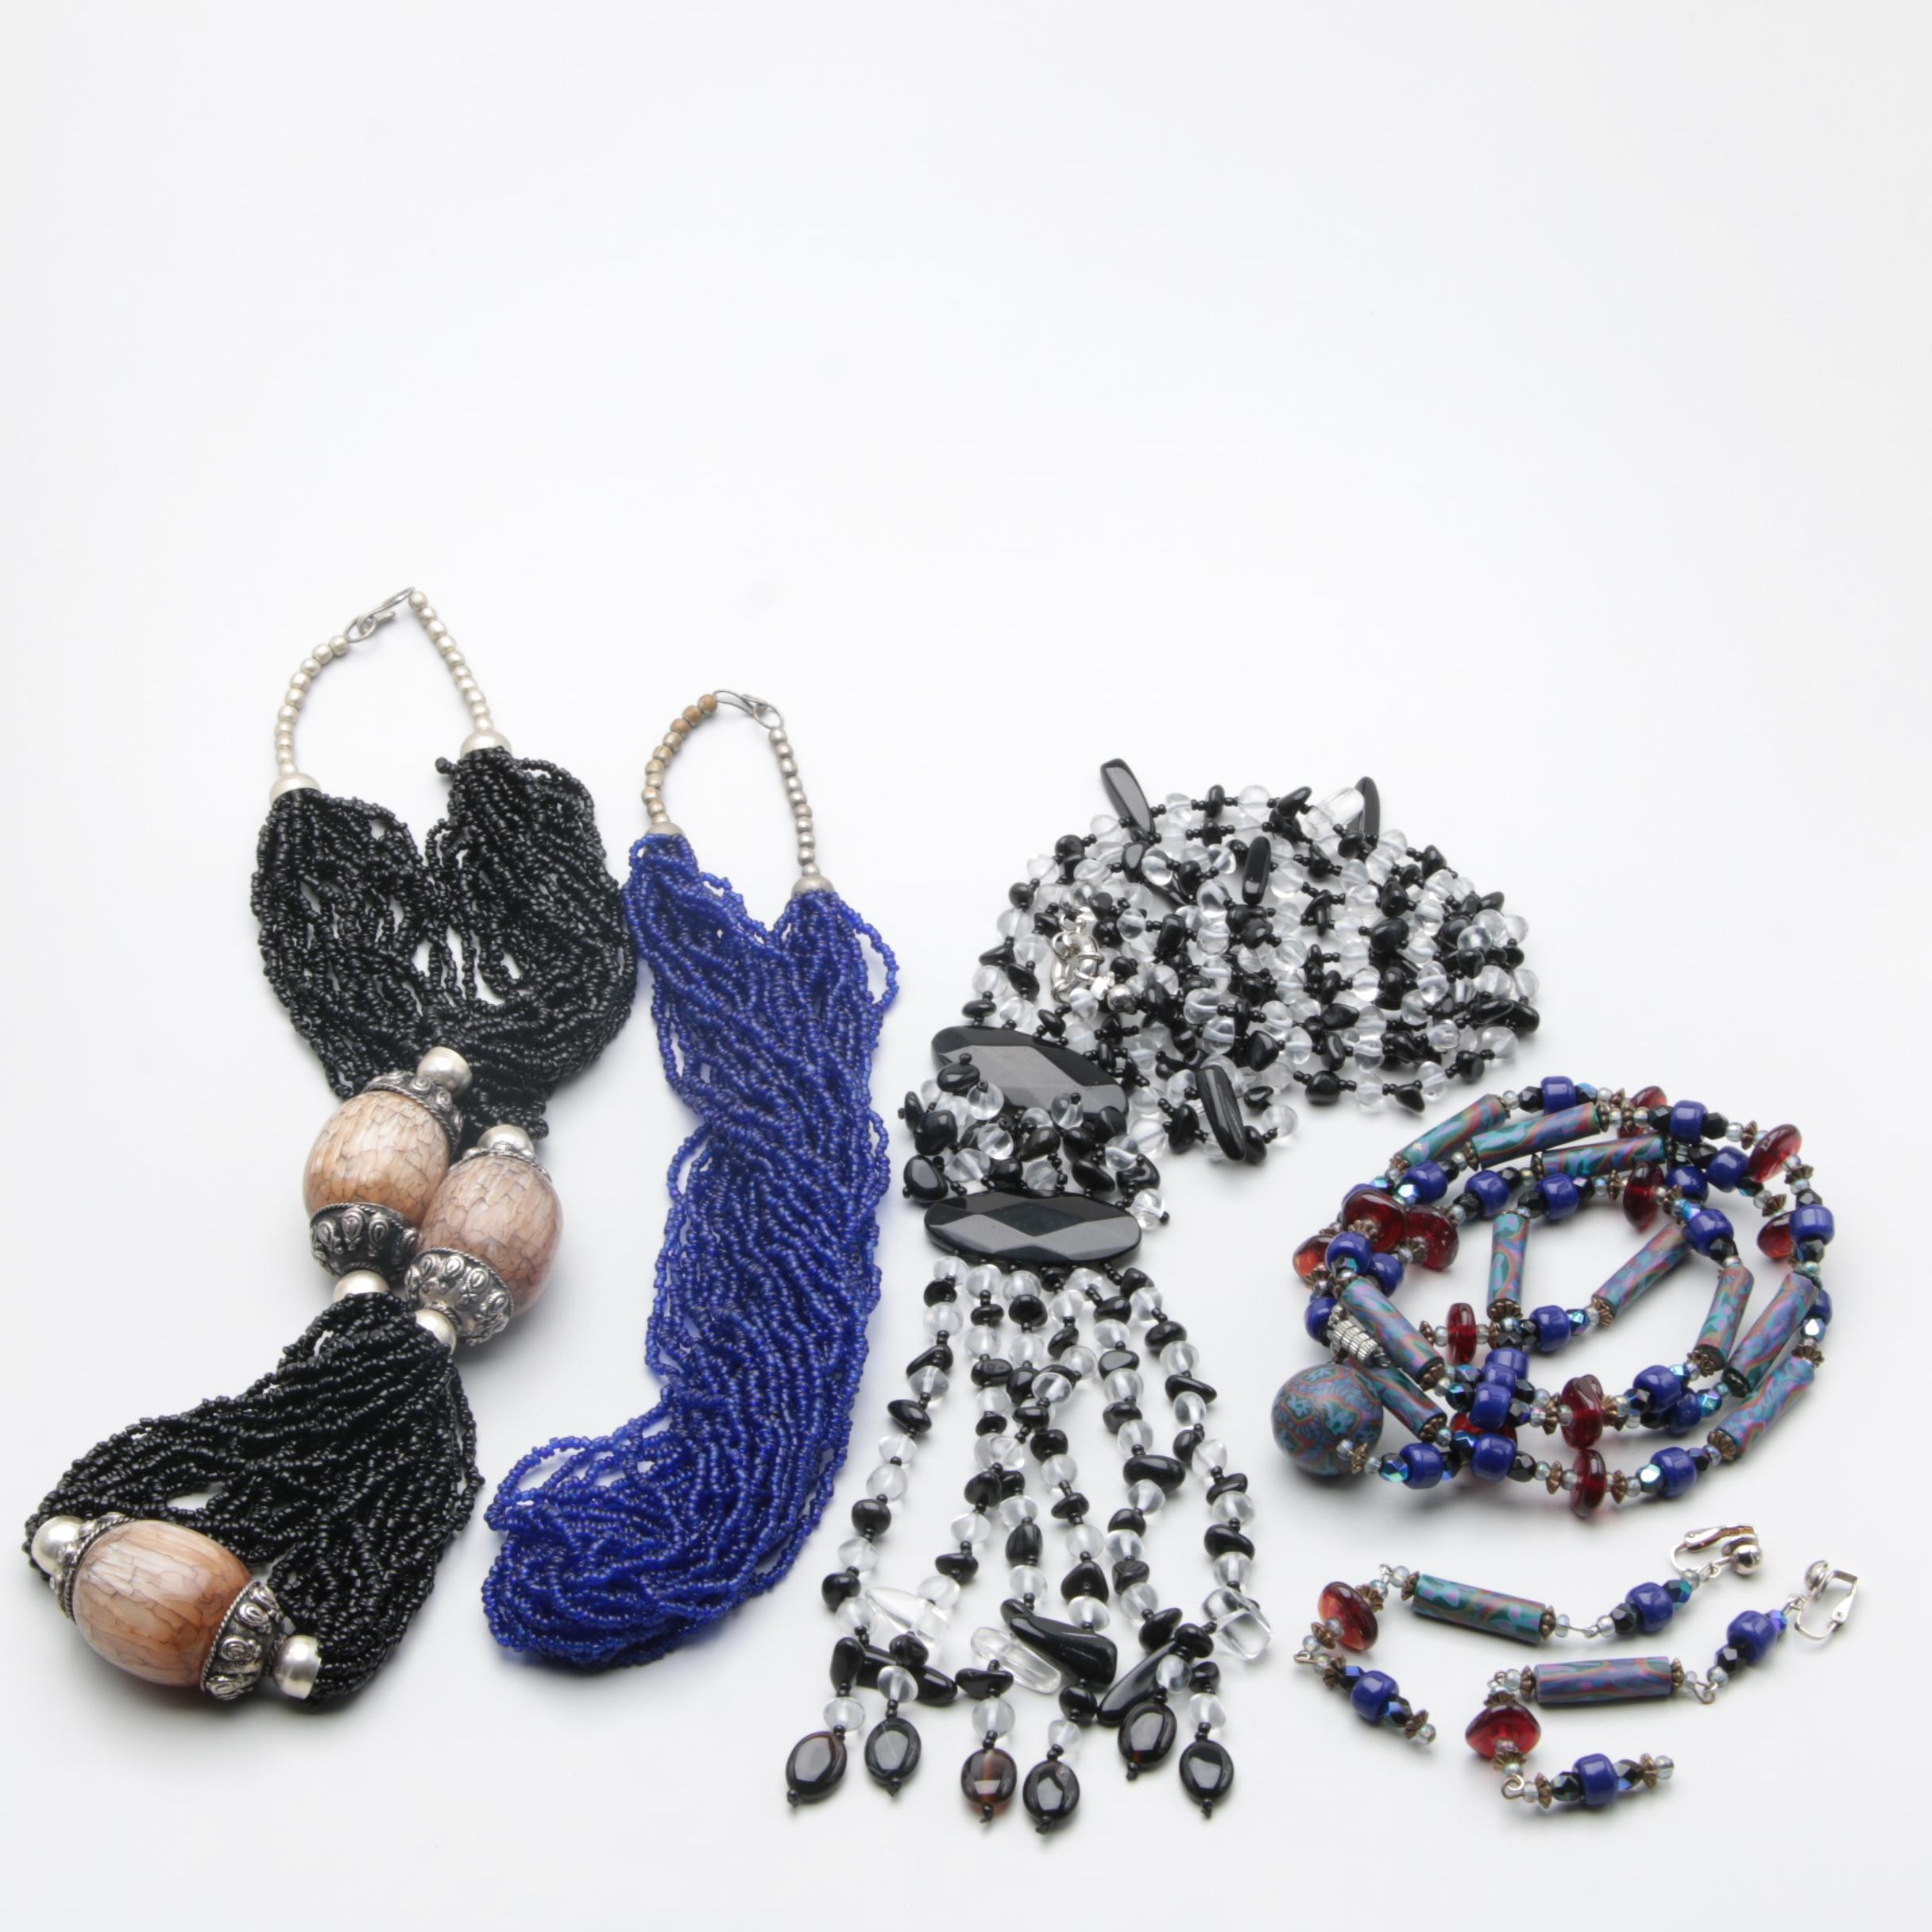 Assortment of Costume Glass Necklace and Earring Set